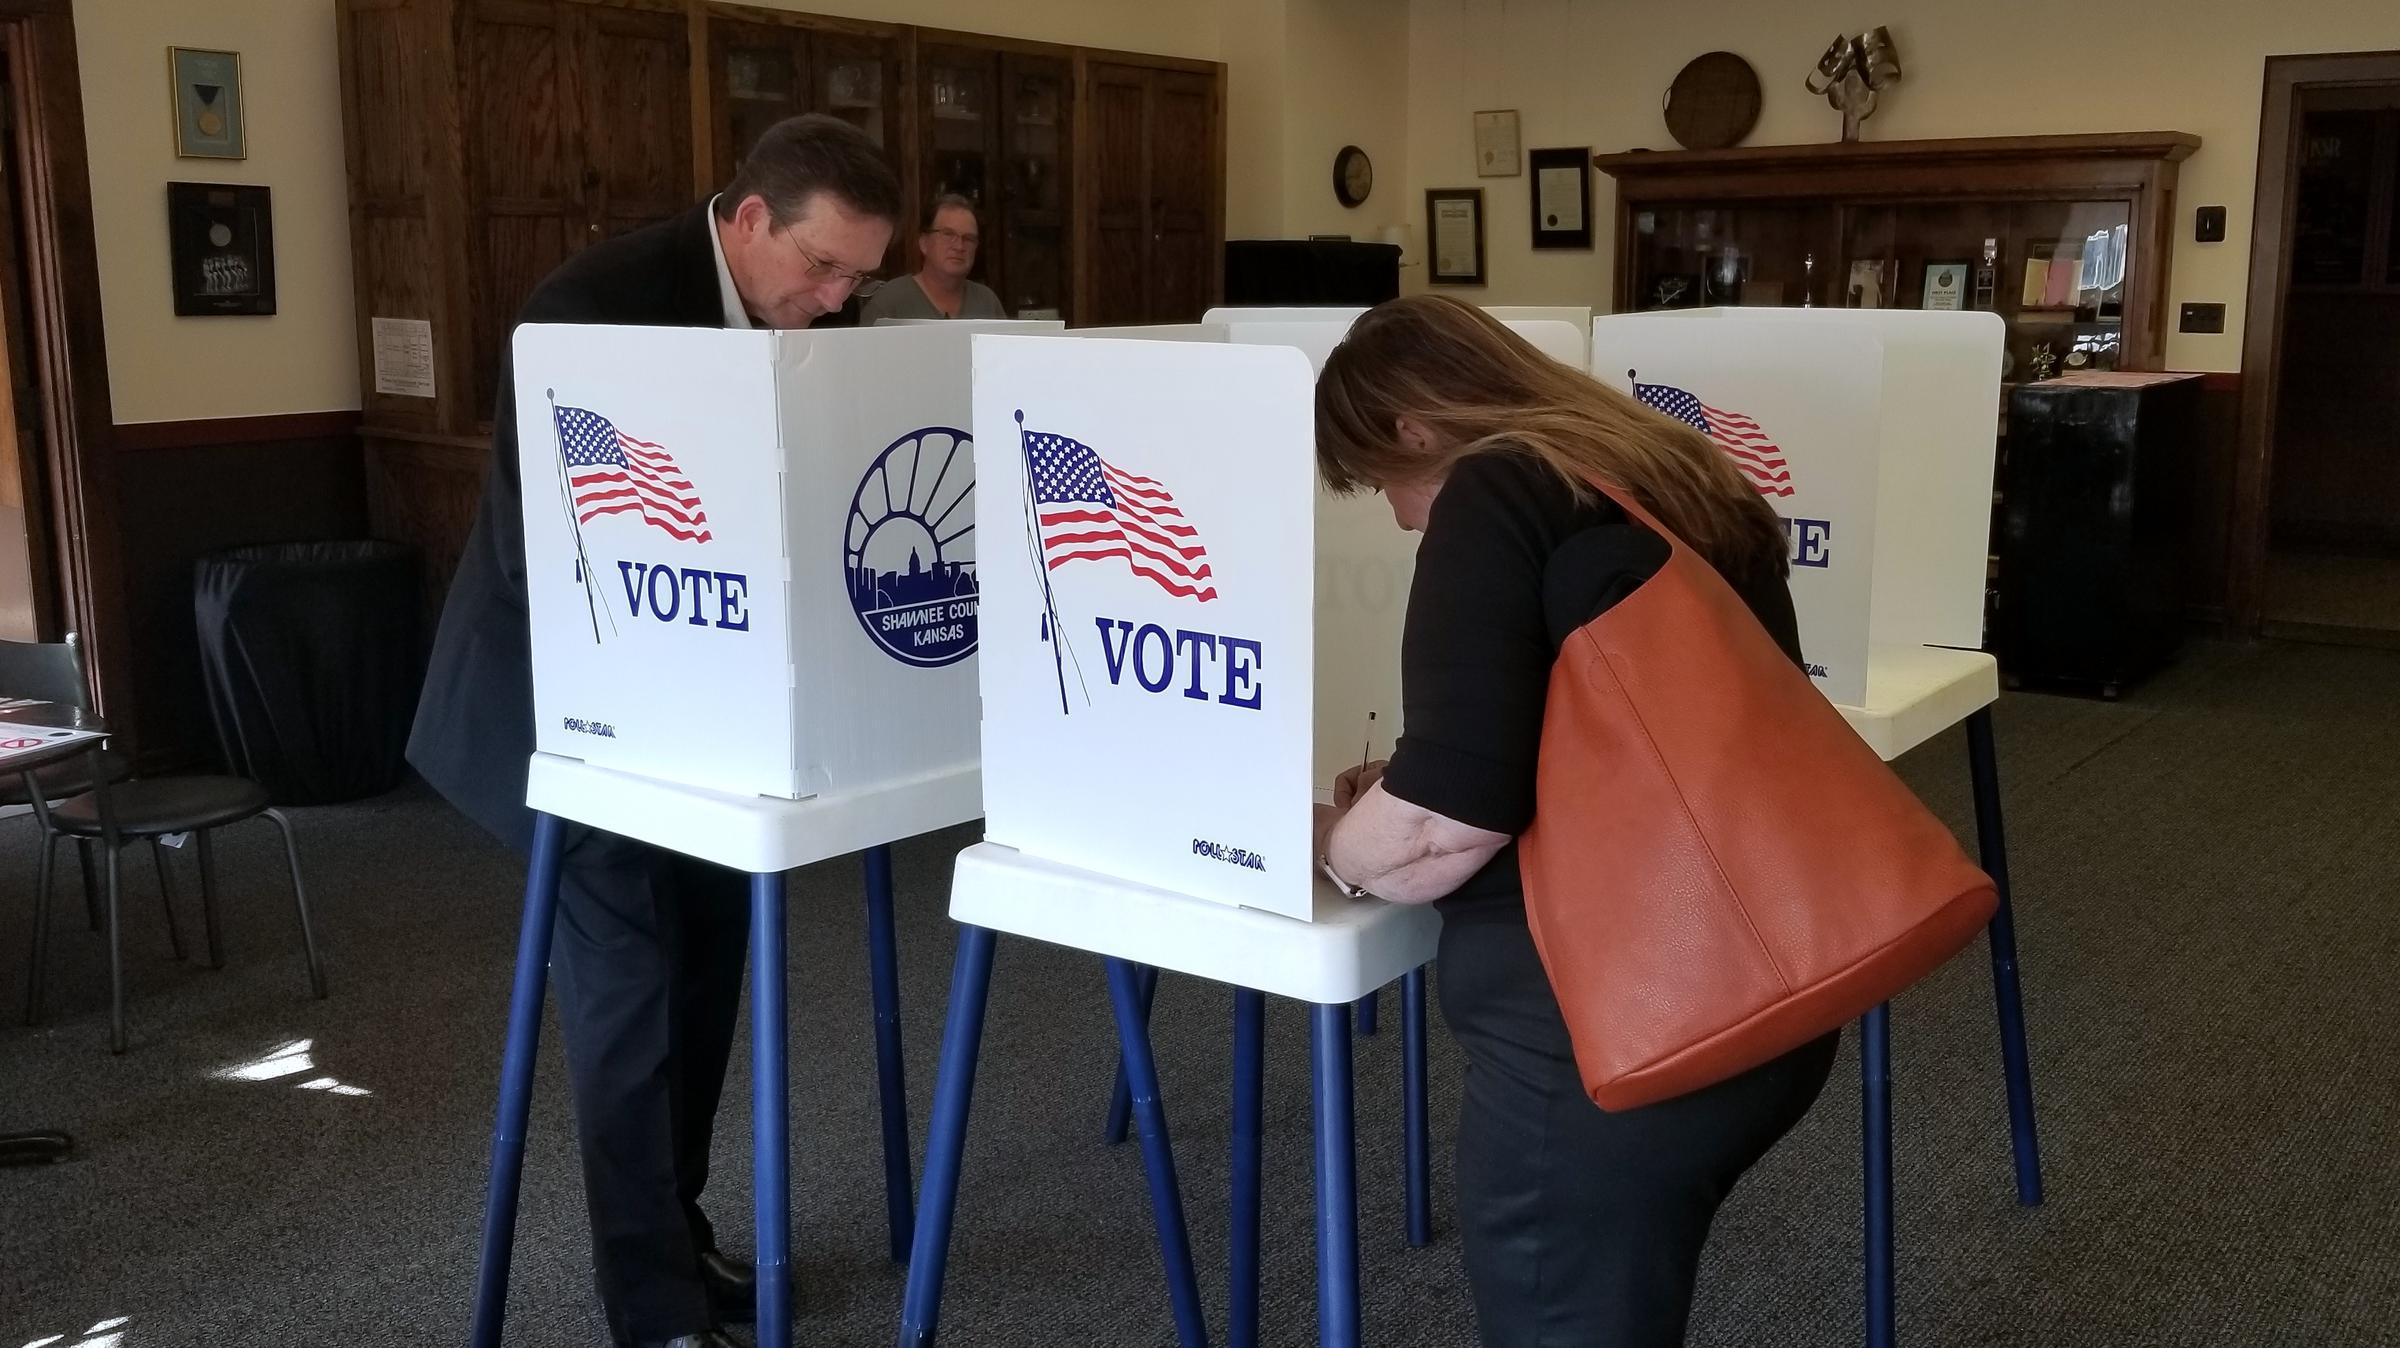 Voters at a Topeka polling place in 2019. (Photo by Stephen Koranda)